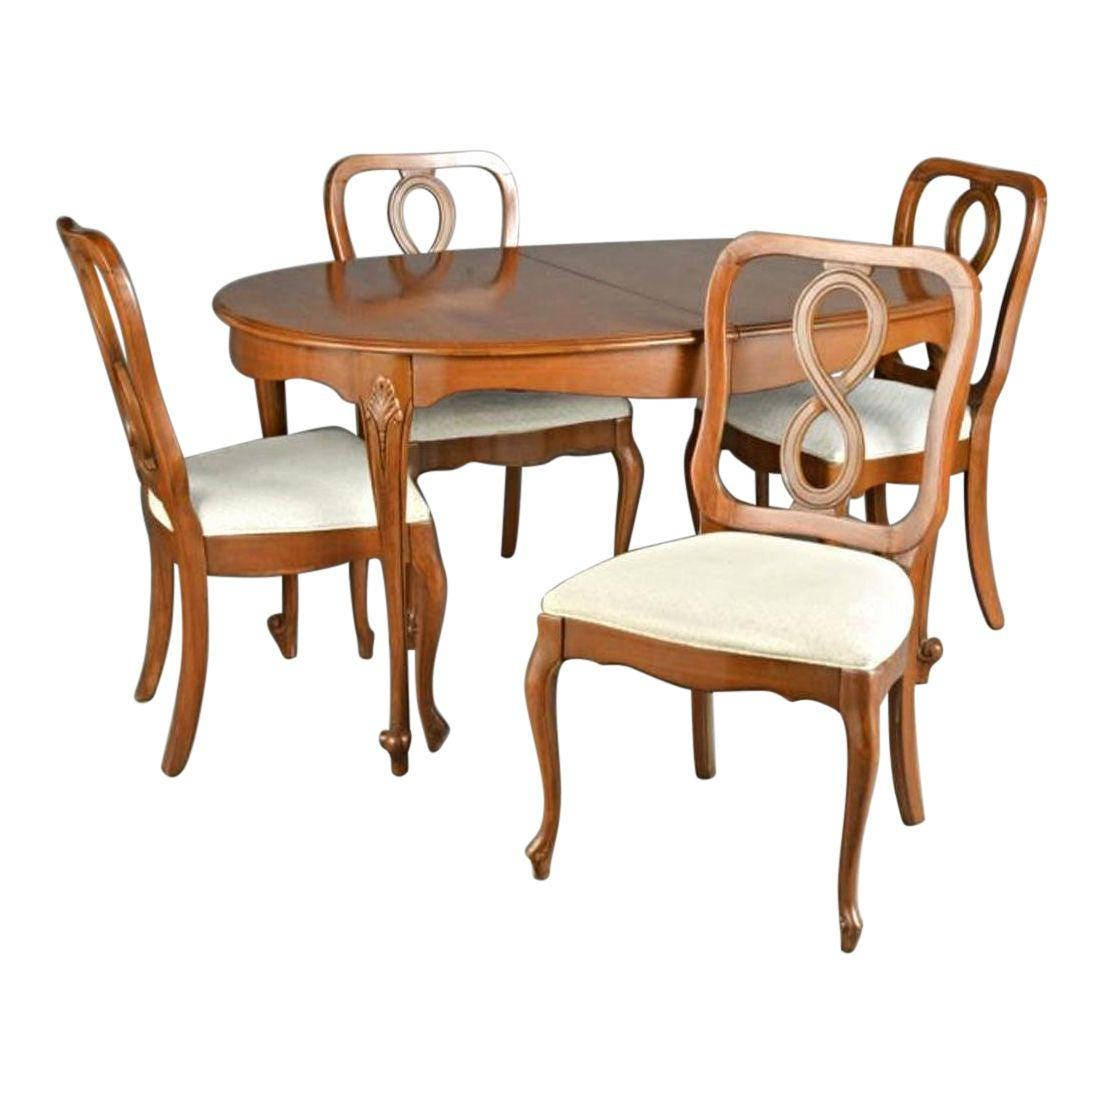 Marvelous Fine Queen Anne Fruitwood Dining Set Carved Table Chairs Vintage Antique Side Download Free Architecture Designs Scobabritishbridgeorg